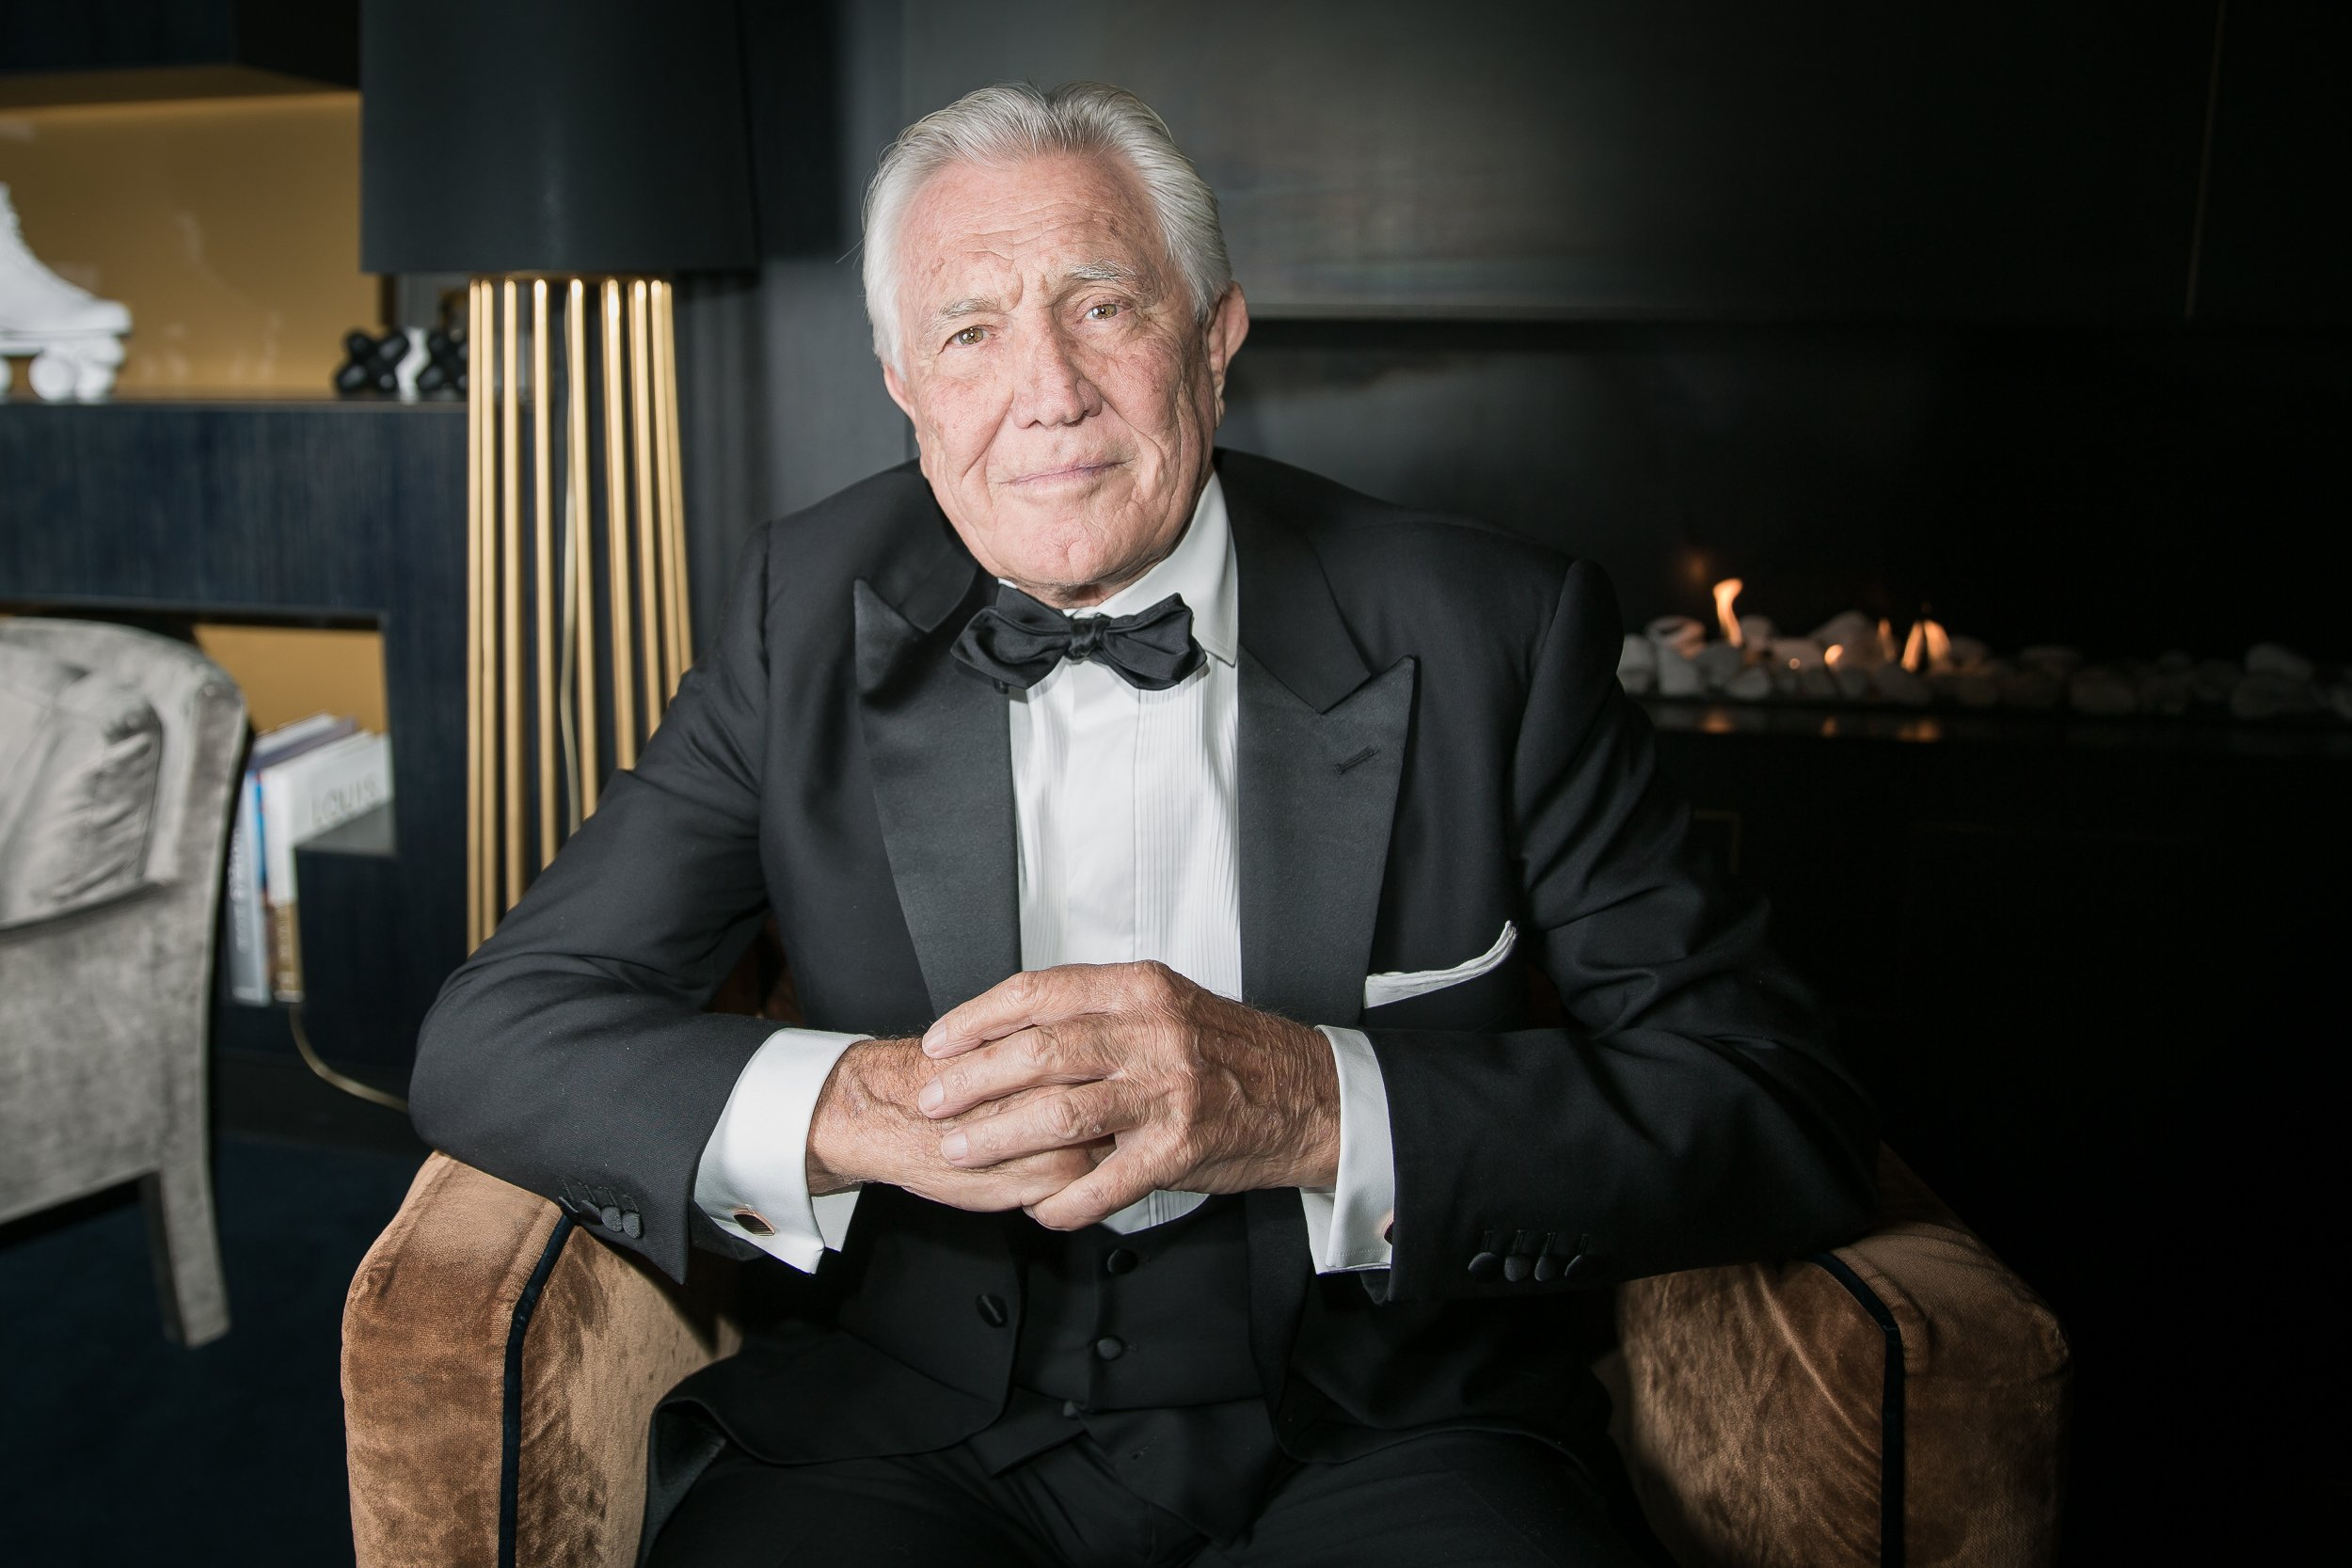 James Bond In Oslo George Lazenby Wearing Anthony Sinclair The